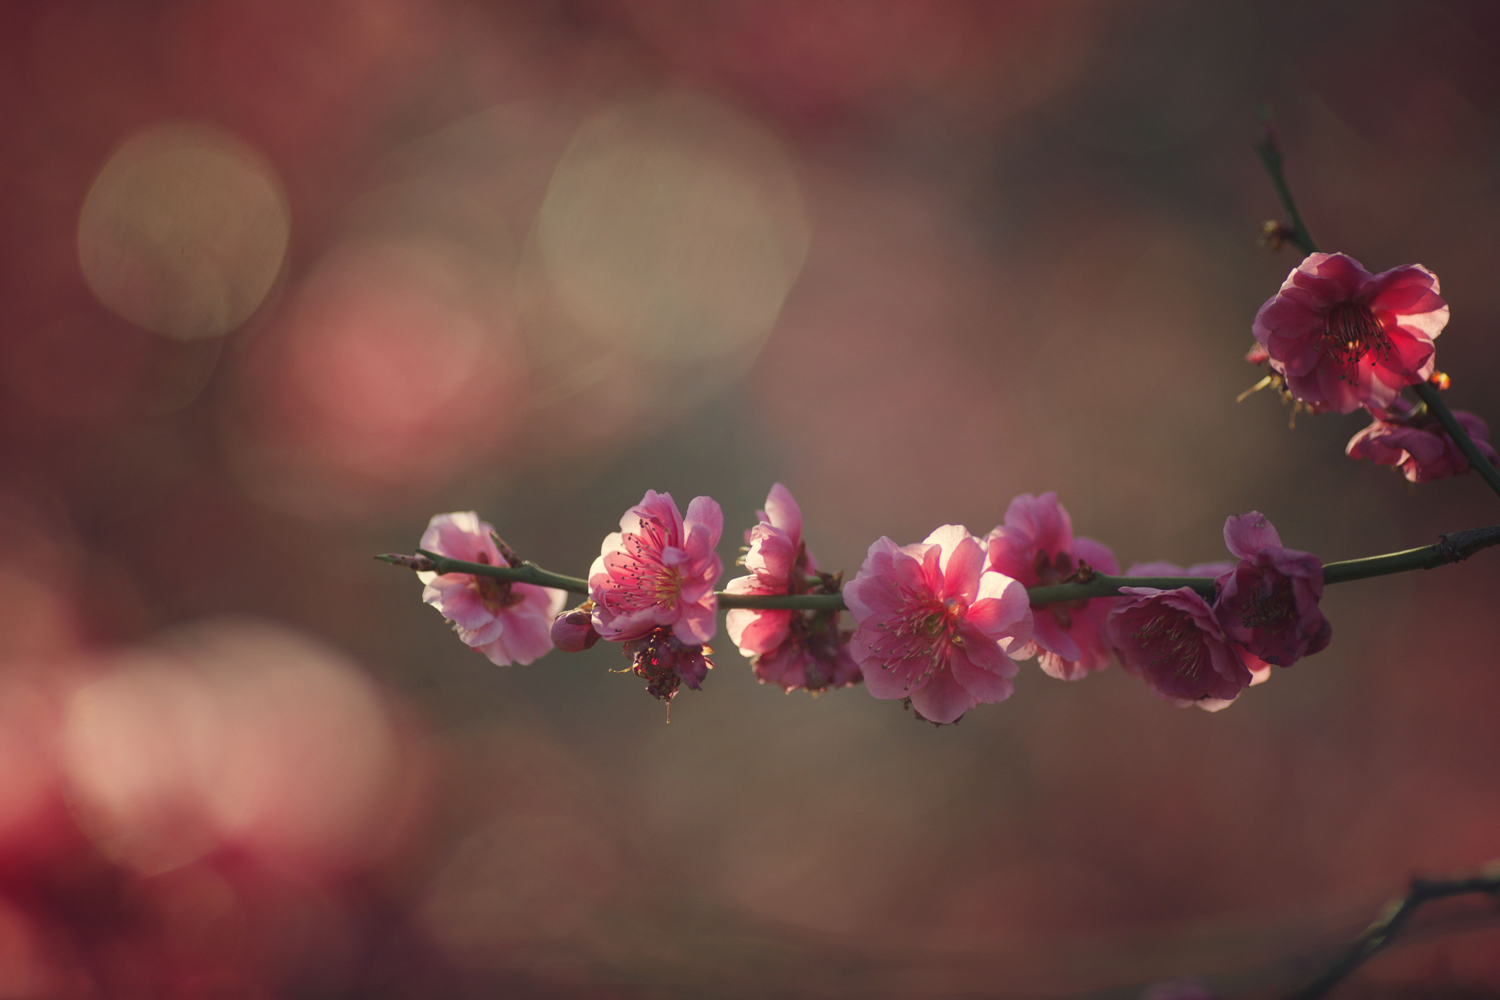 Image: This photo shows bokeh created using a prime lens.